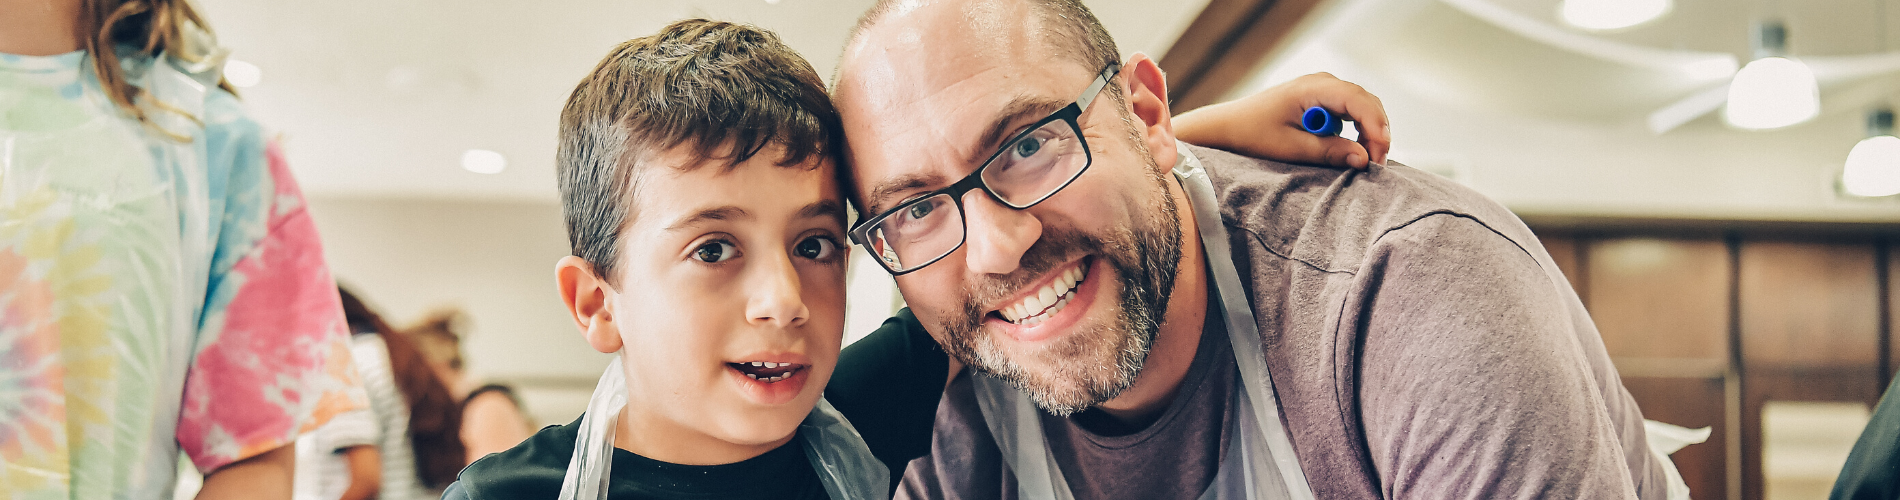 Man and son volunteering together